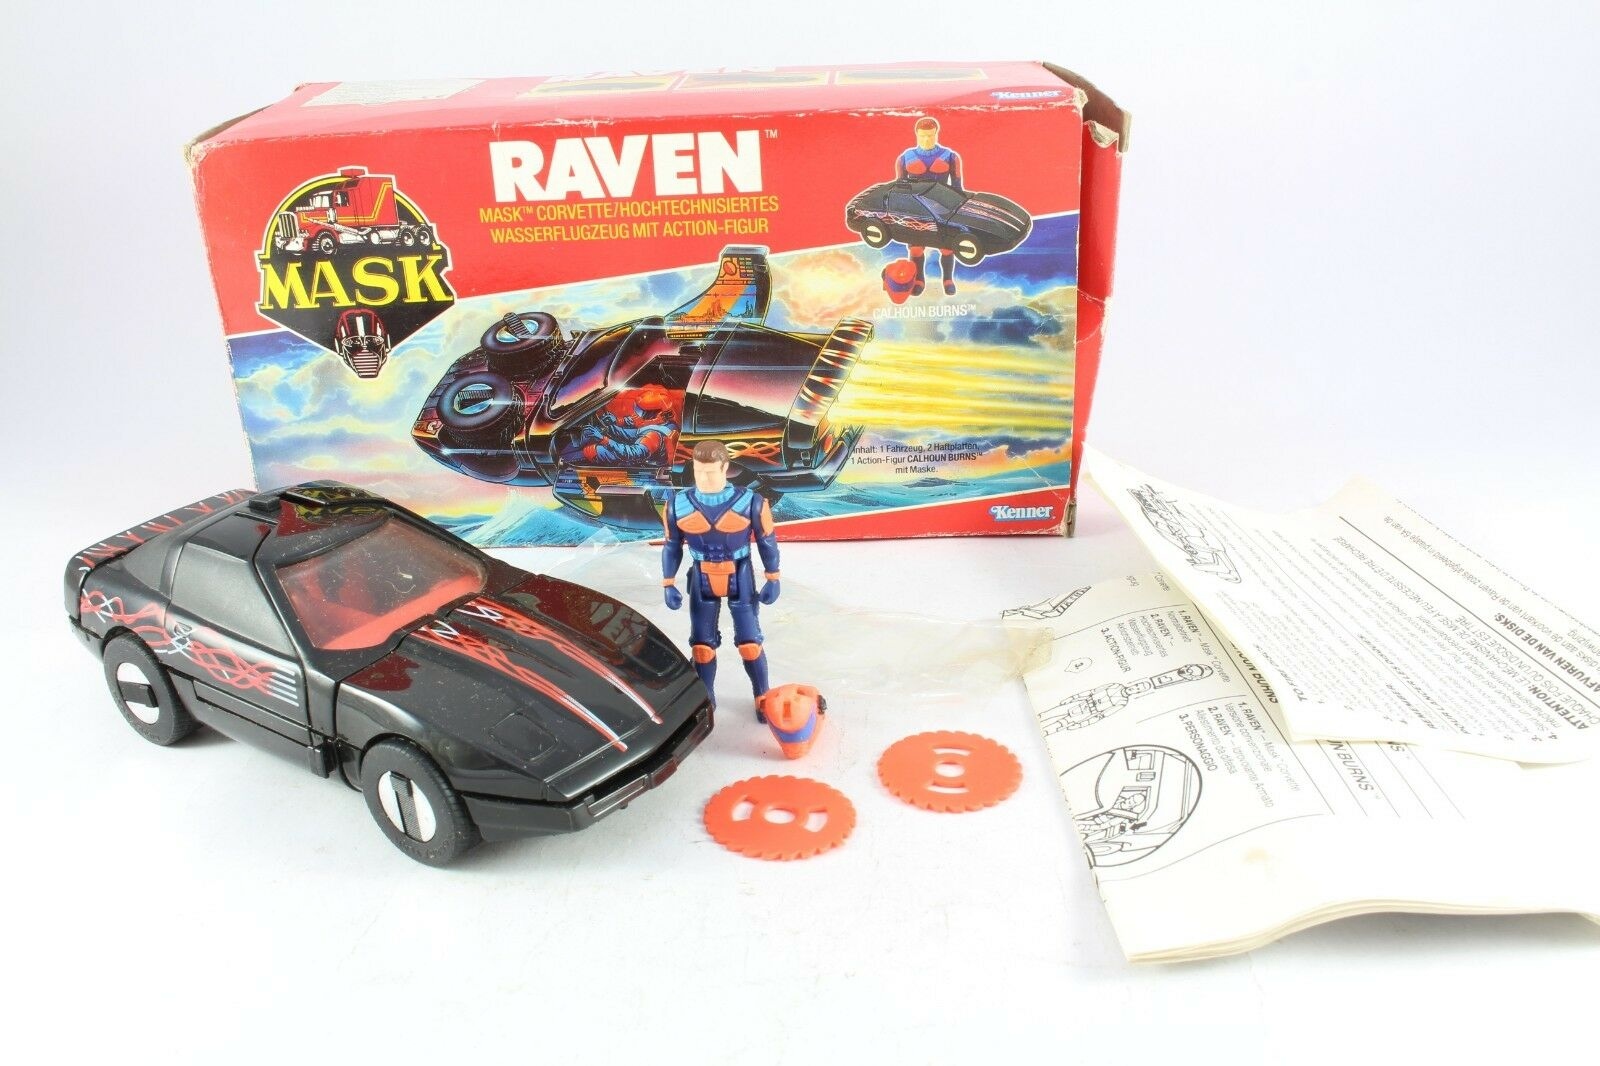 1986 Kenner M.A.S.K. Mask Raven Calhoun Burns Complete Boxed Fantastic Condition